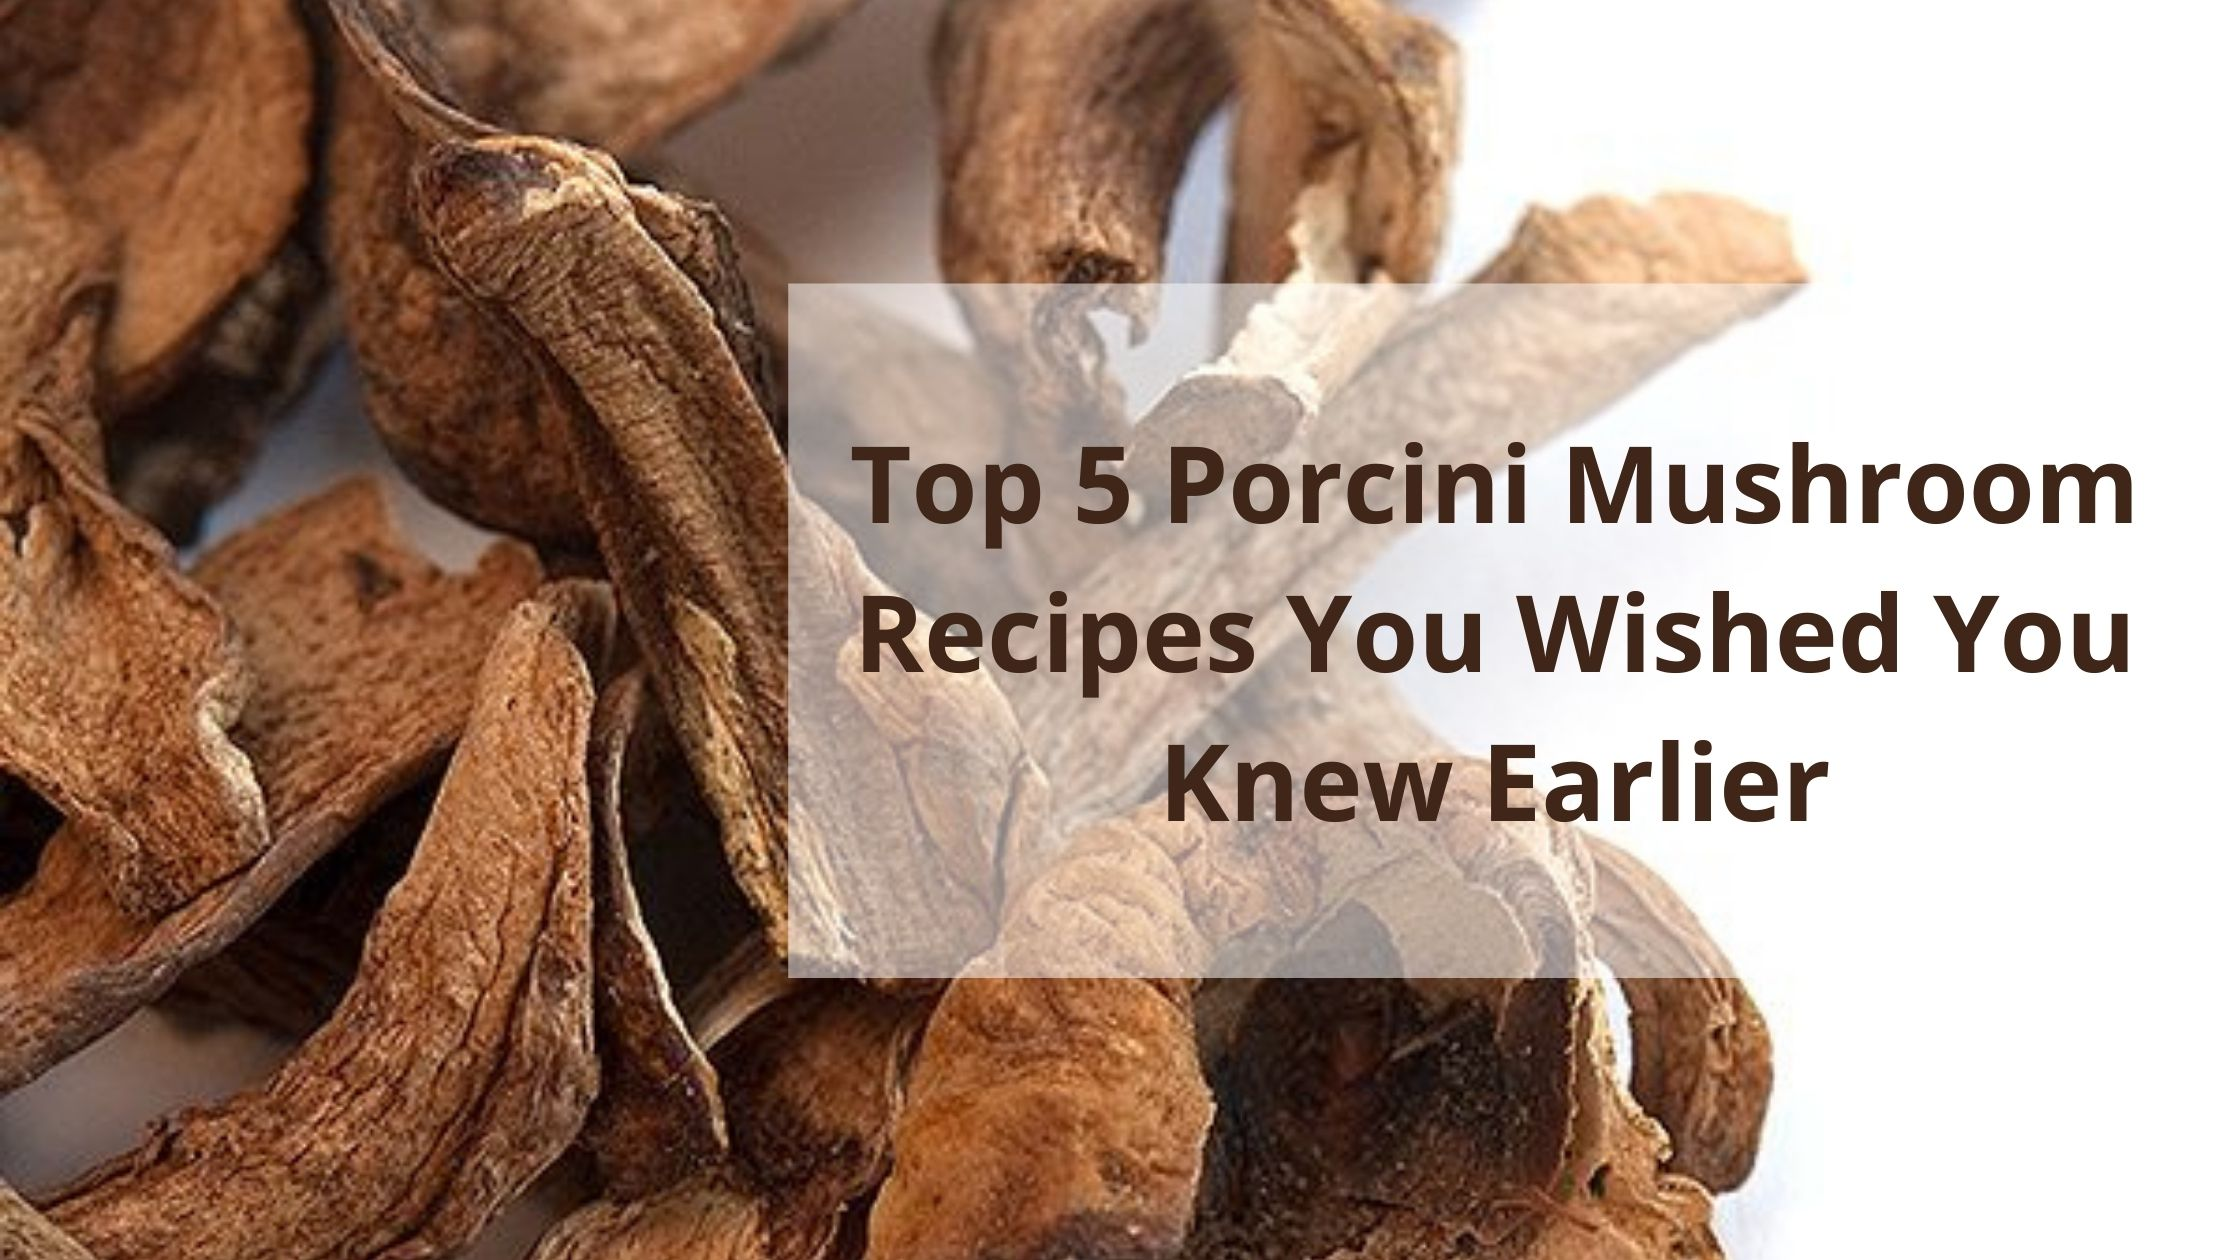 Top 5 Porcini Mushroom Recipes You Wished You Knew Earlier